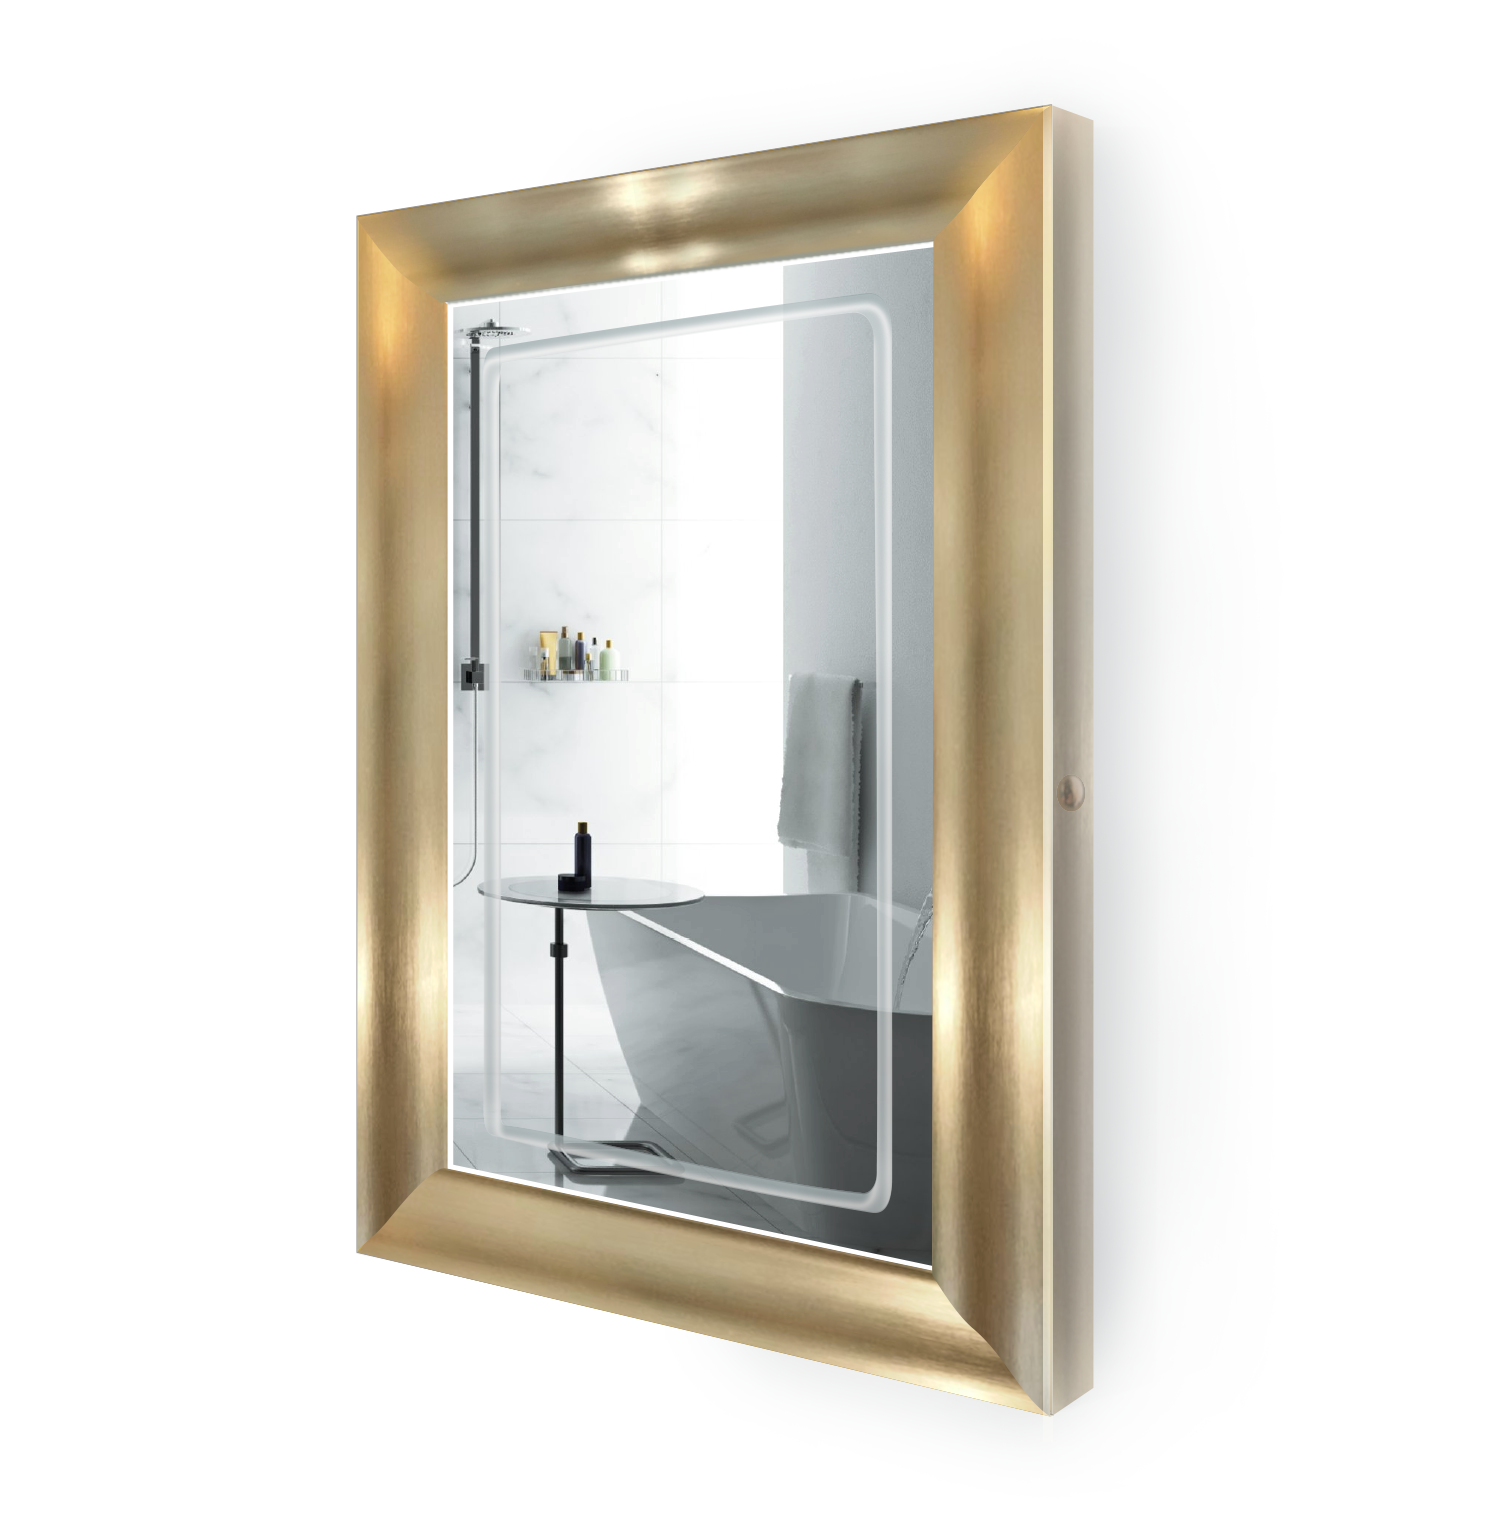 mirror framed mirror bathroom led lighted 24 inch x 36 inch bathroom gold frame mirror 19484